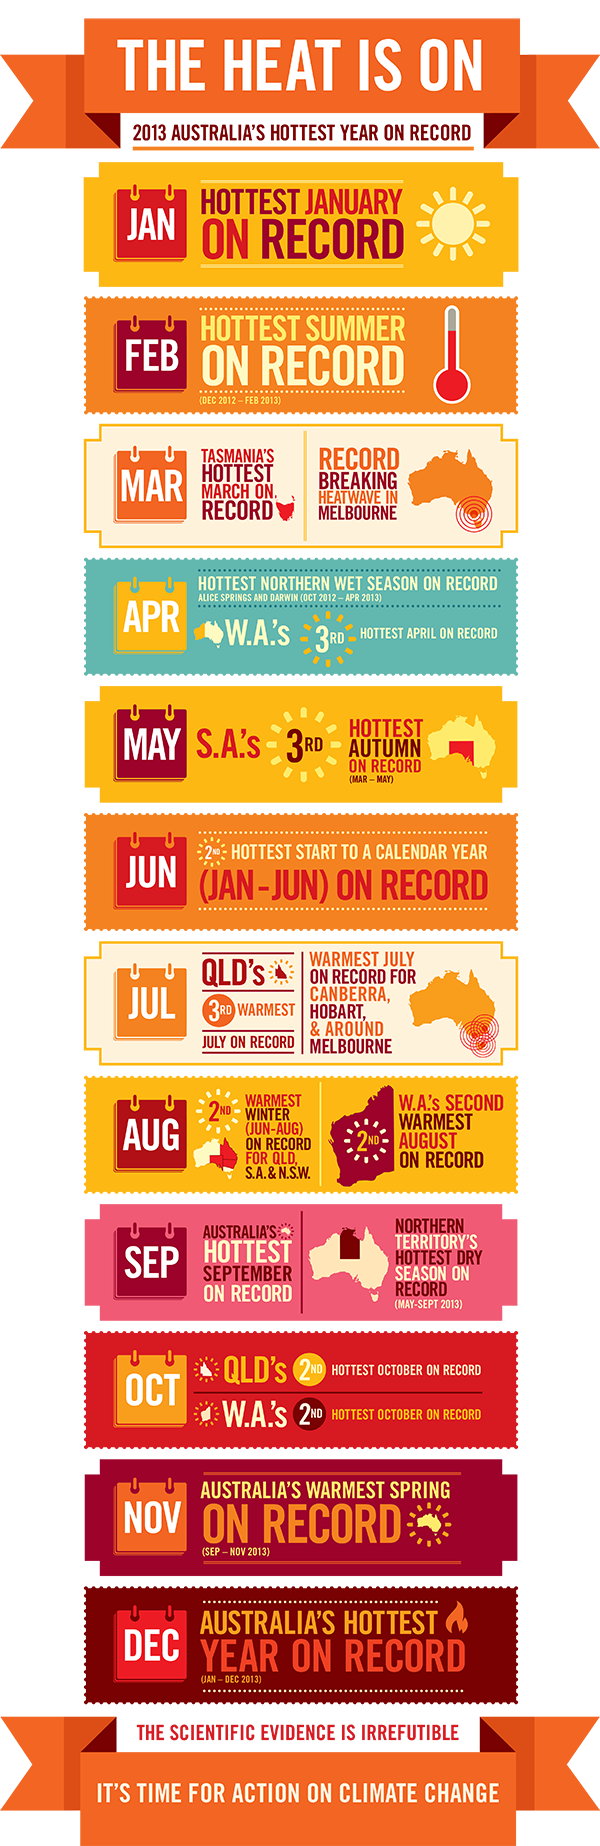 global warming hottest australia on record